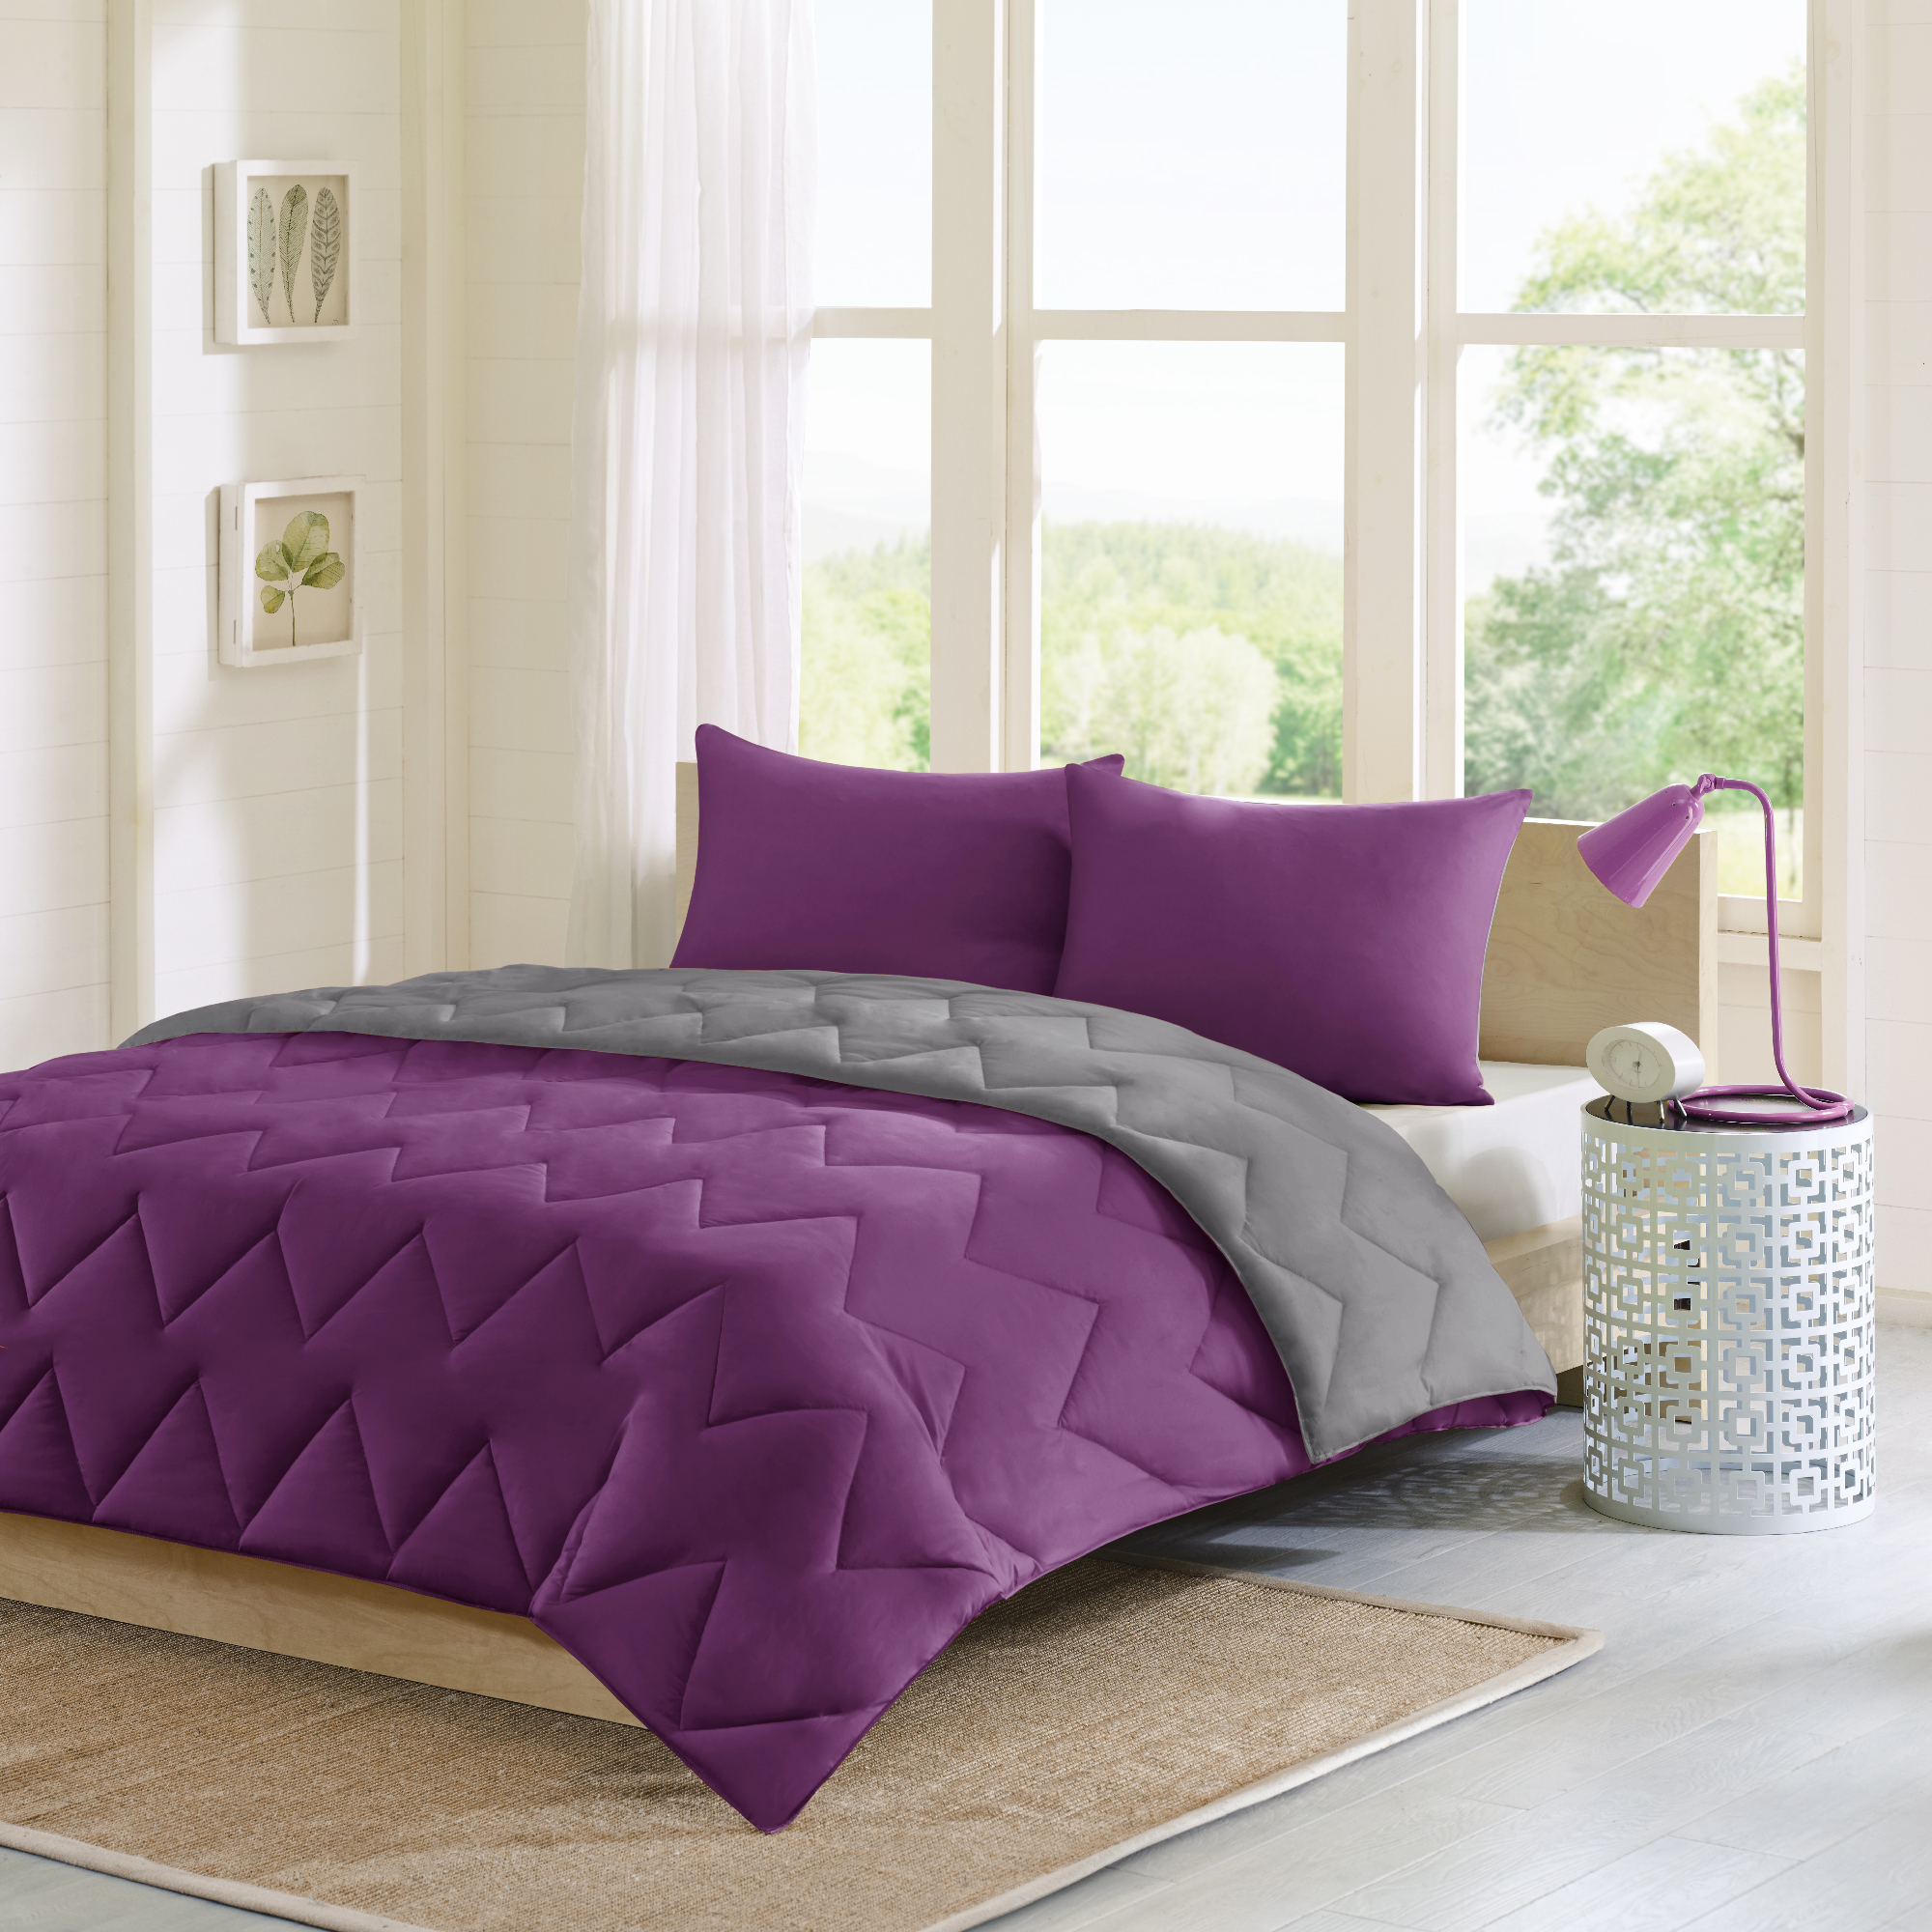 Home Essence Apartment Penny Reversible Luxurious Soft Brushed Down Alternative Comforter Mini Set